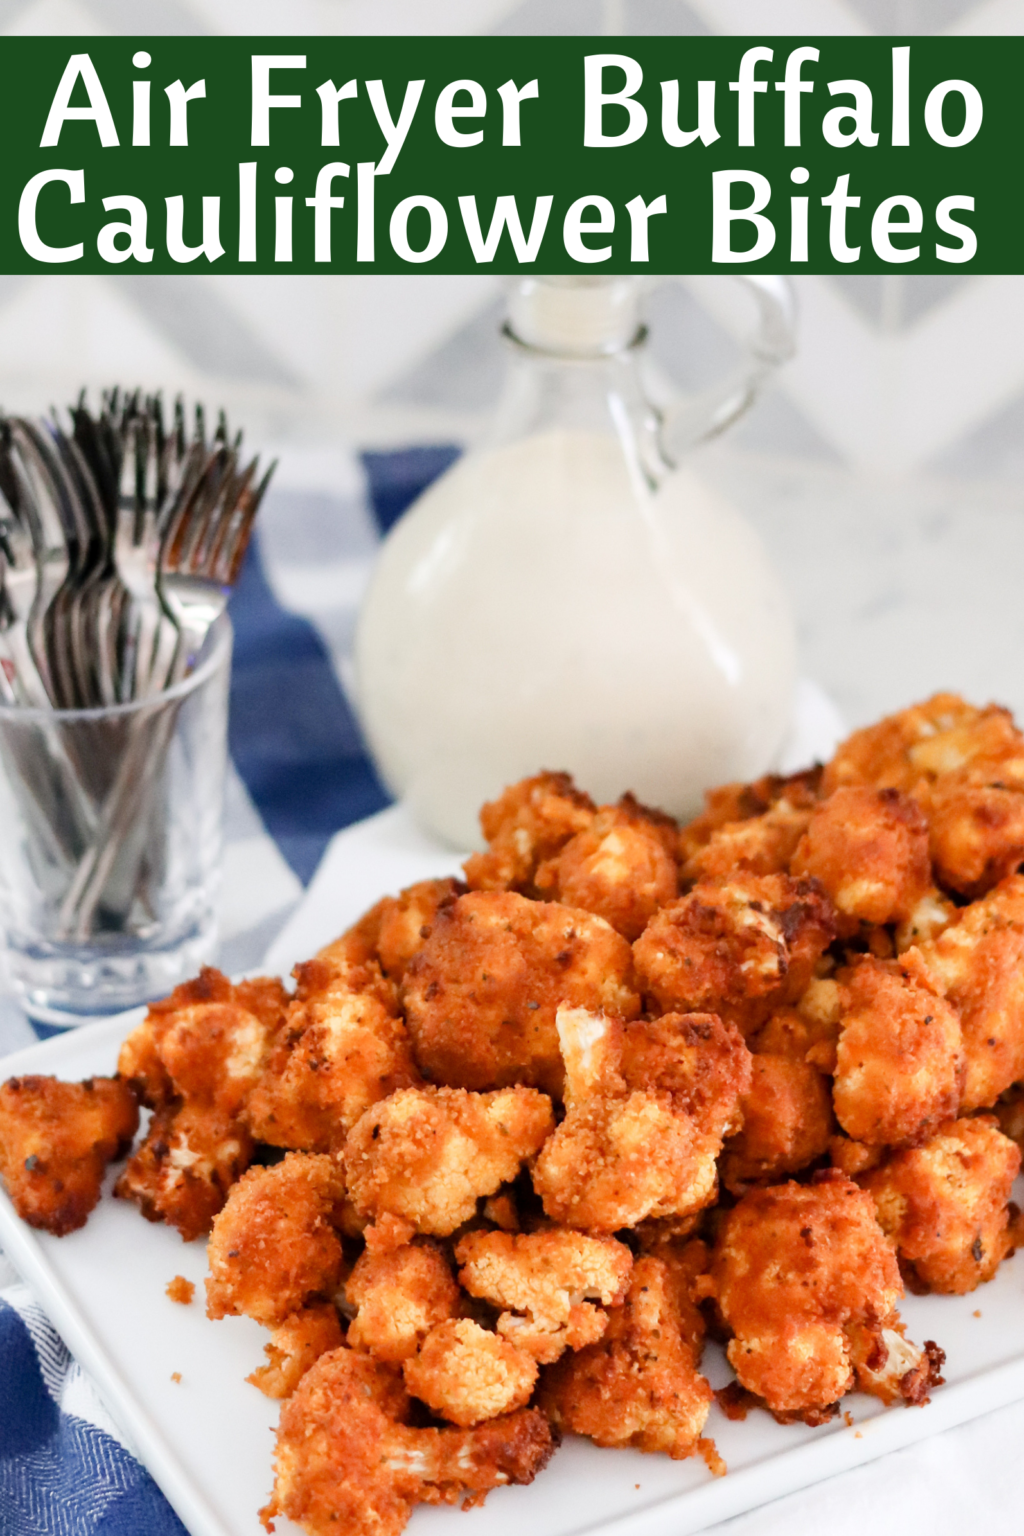 Air Fryer Buffalo Cauliflower Bites No Oil Domestic Superhero